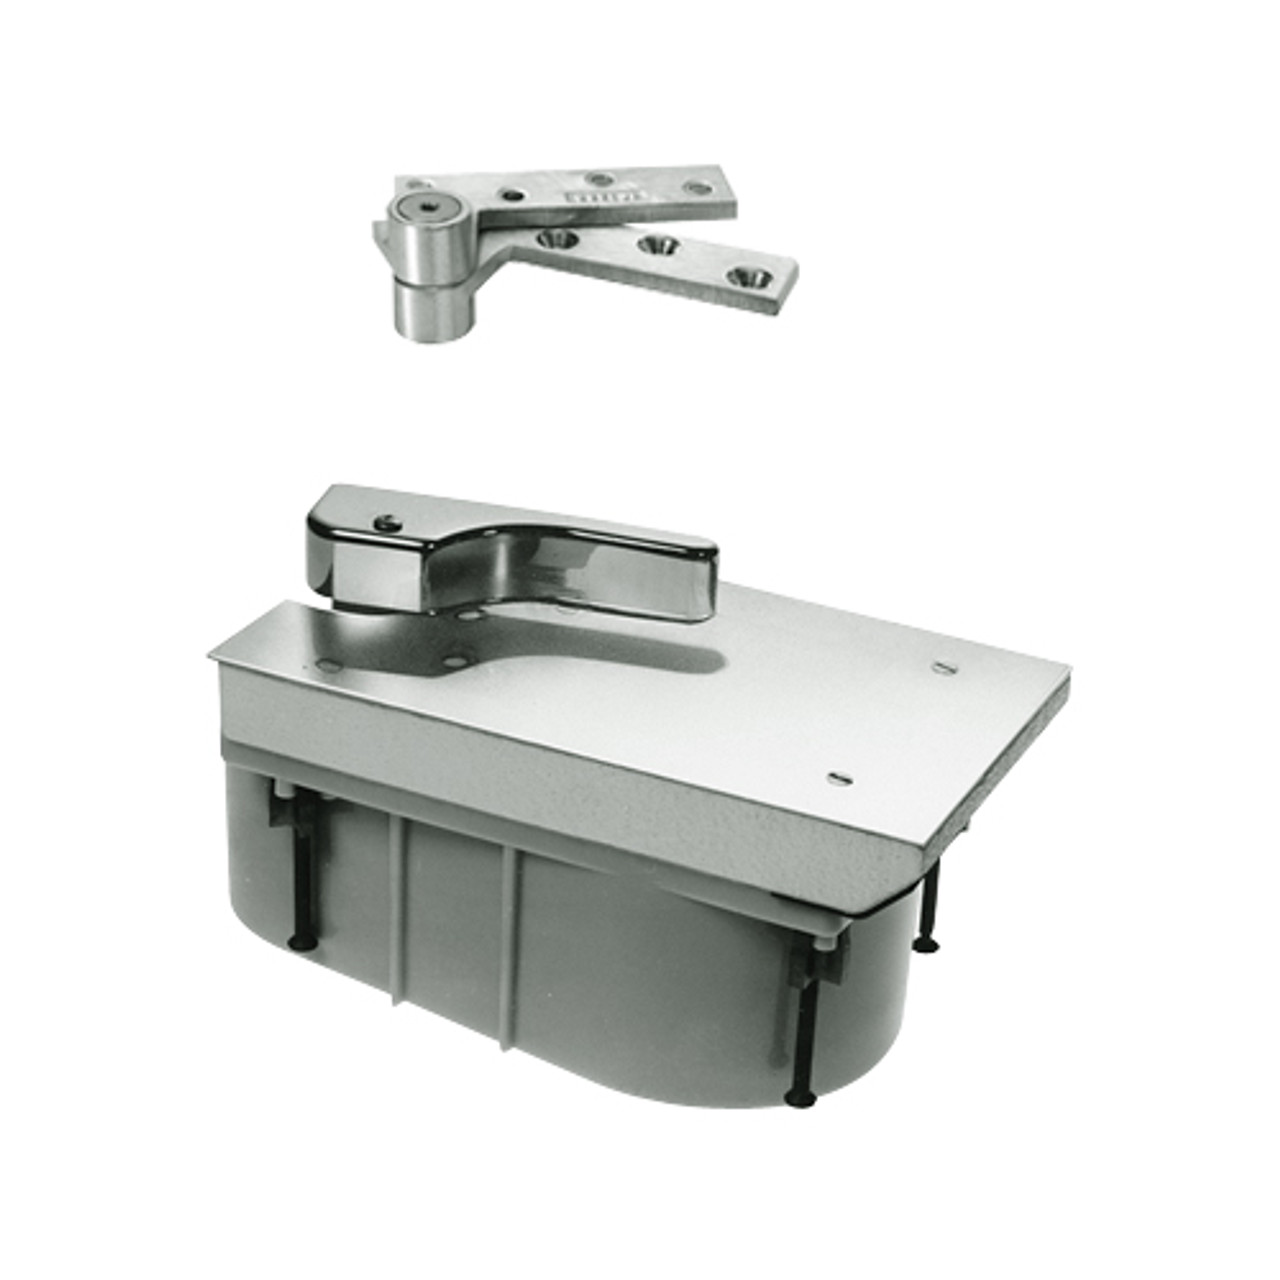 PHQ27-90S-LH-619 Rixson 27 Series Heavy Duty Quick Install Offset Hung Floor Closer in Satin Nickel Finish